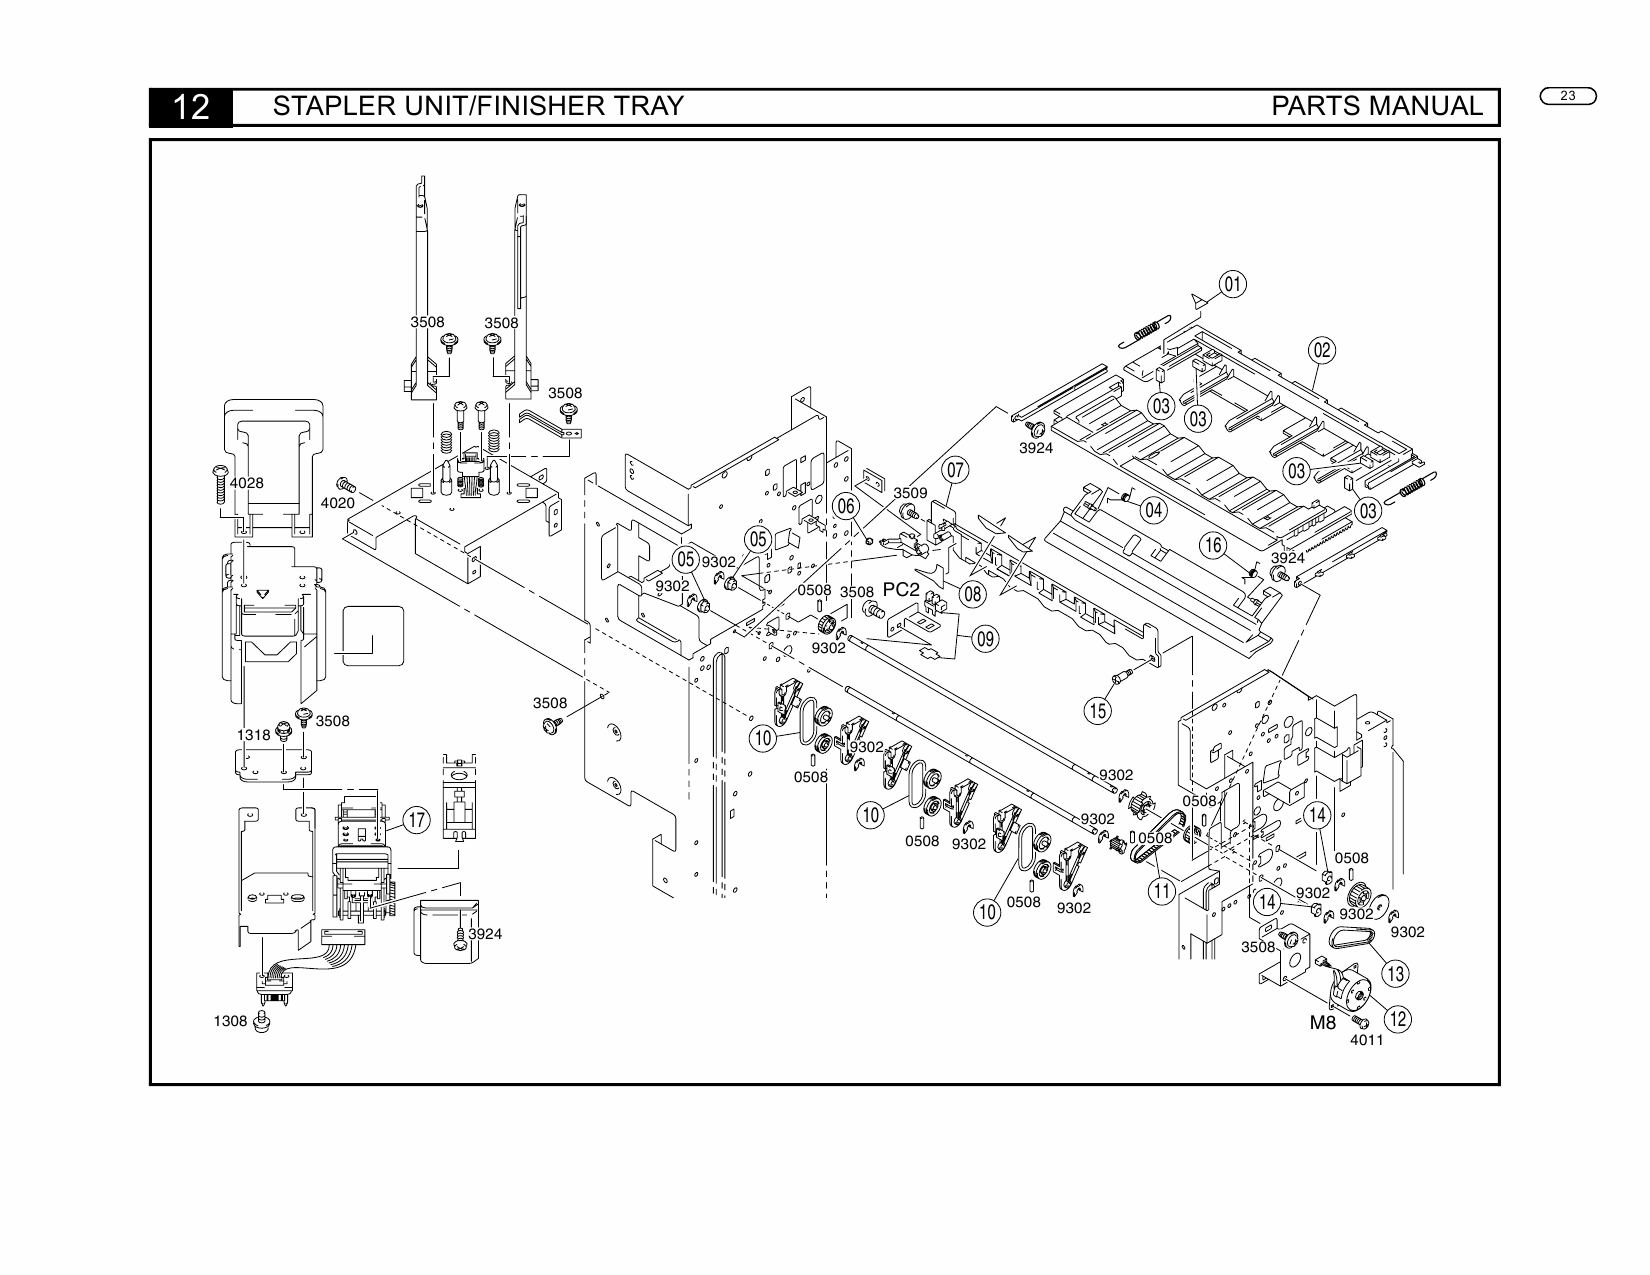 Konica-Minolta Options FN-504 Parts Manual-3